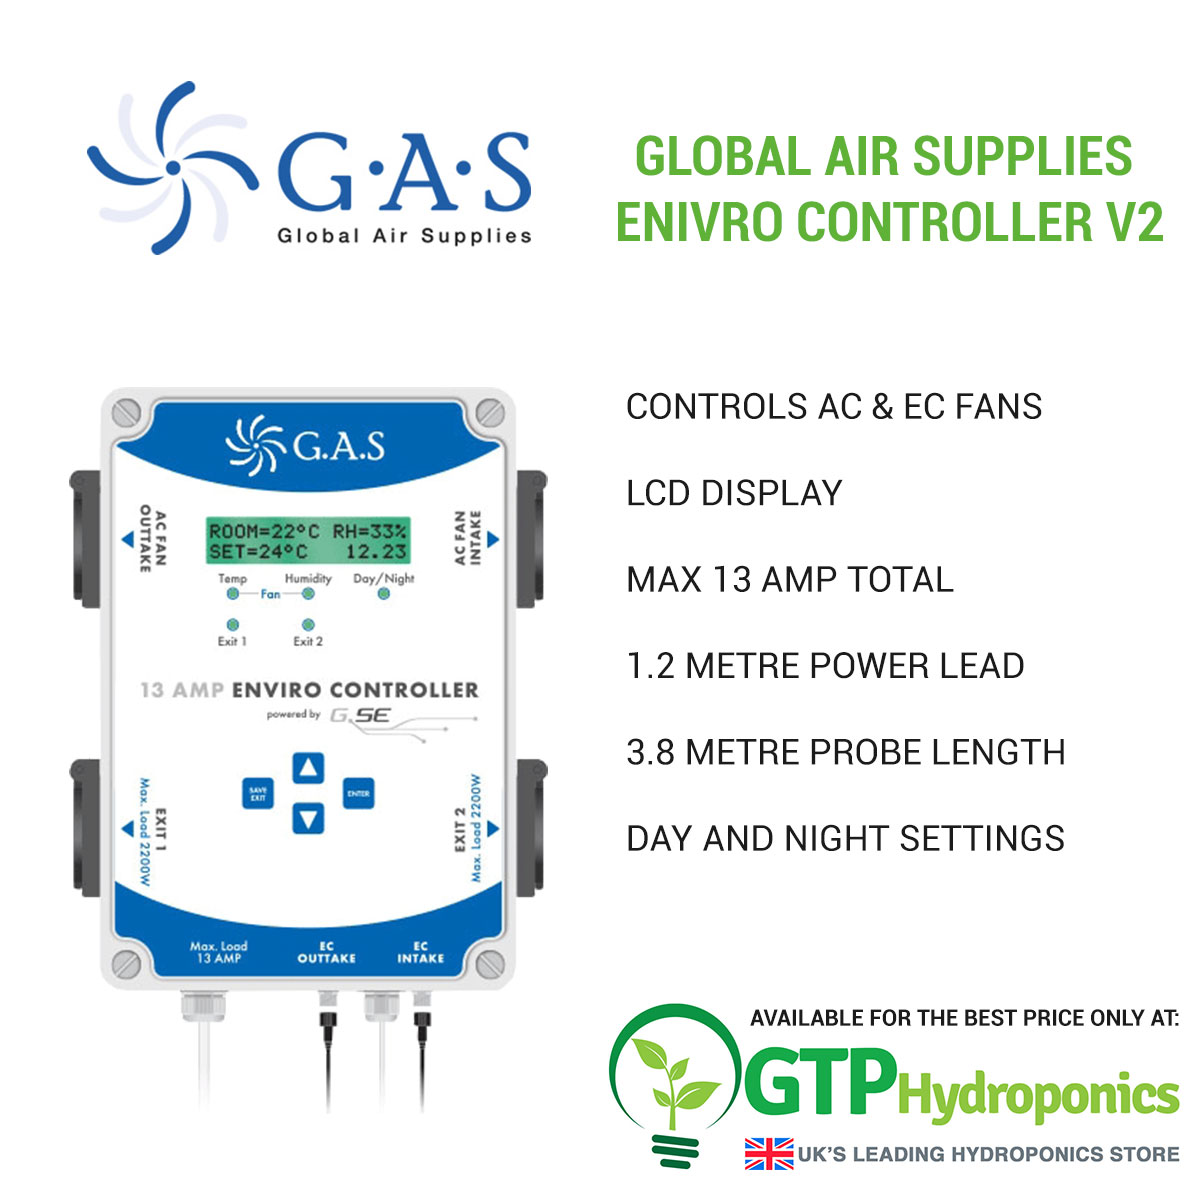 Global Air Supplies Enivro Controller V2 overview